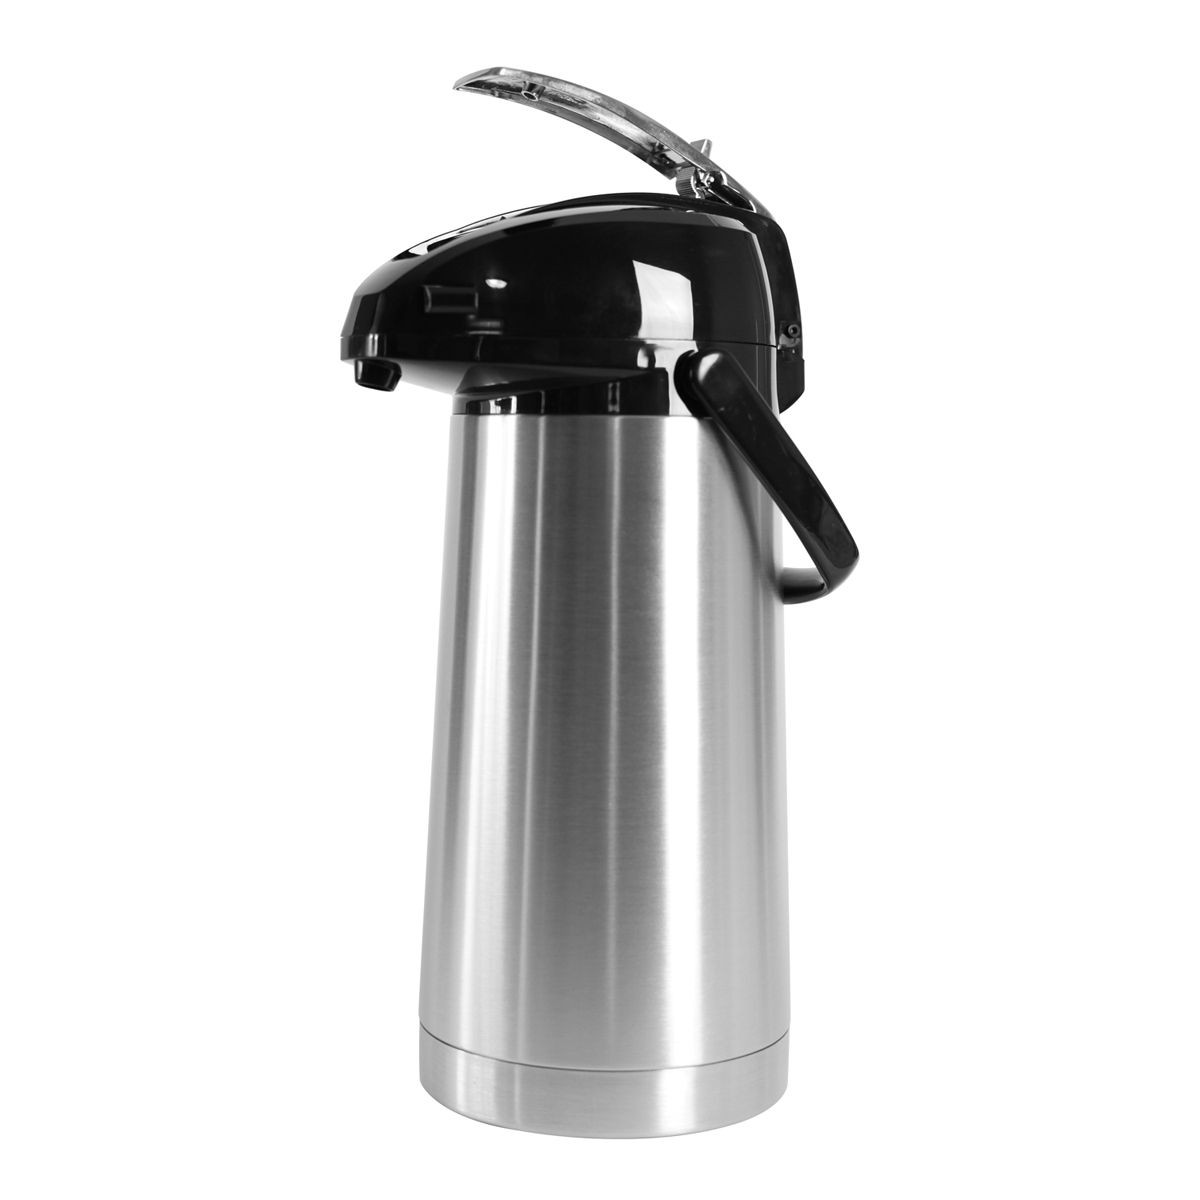 Service Ideas SAL30 Stainless Steel Airpot with Lever, 3 Liter